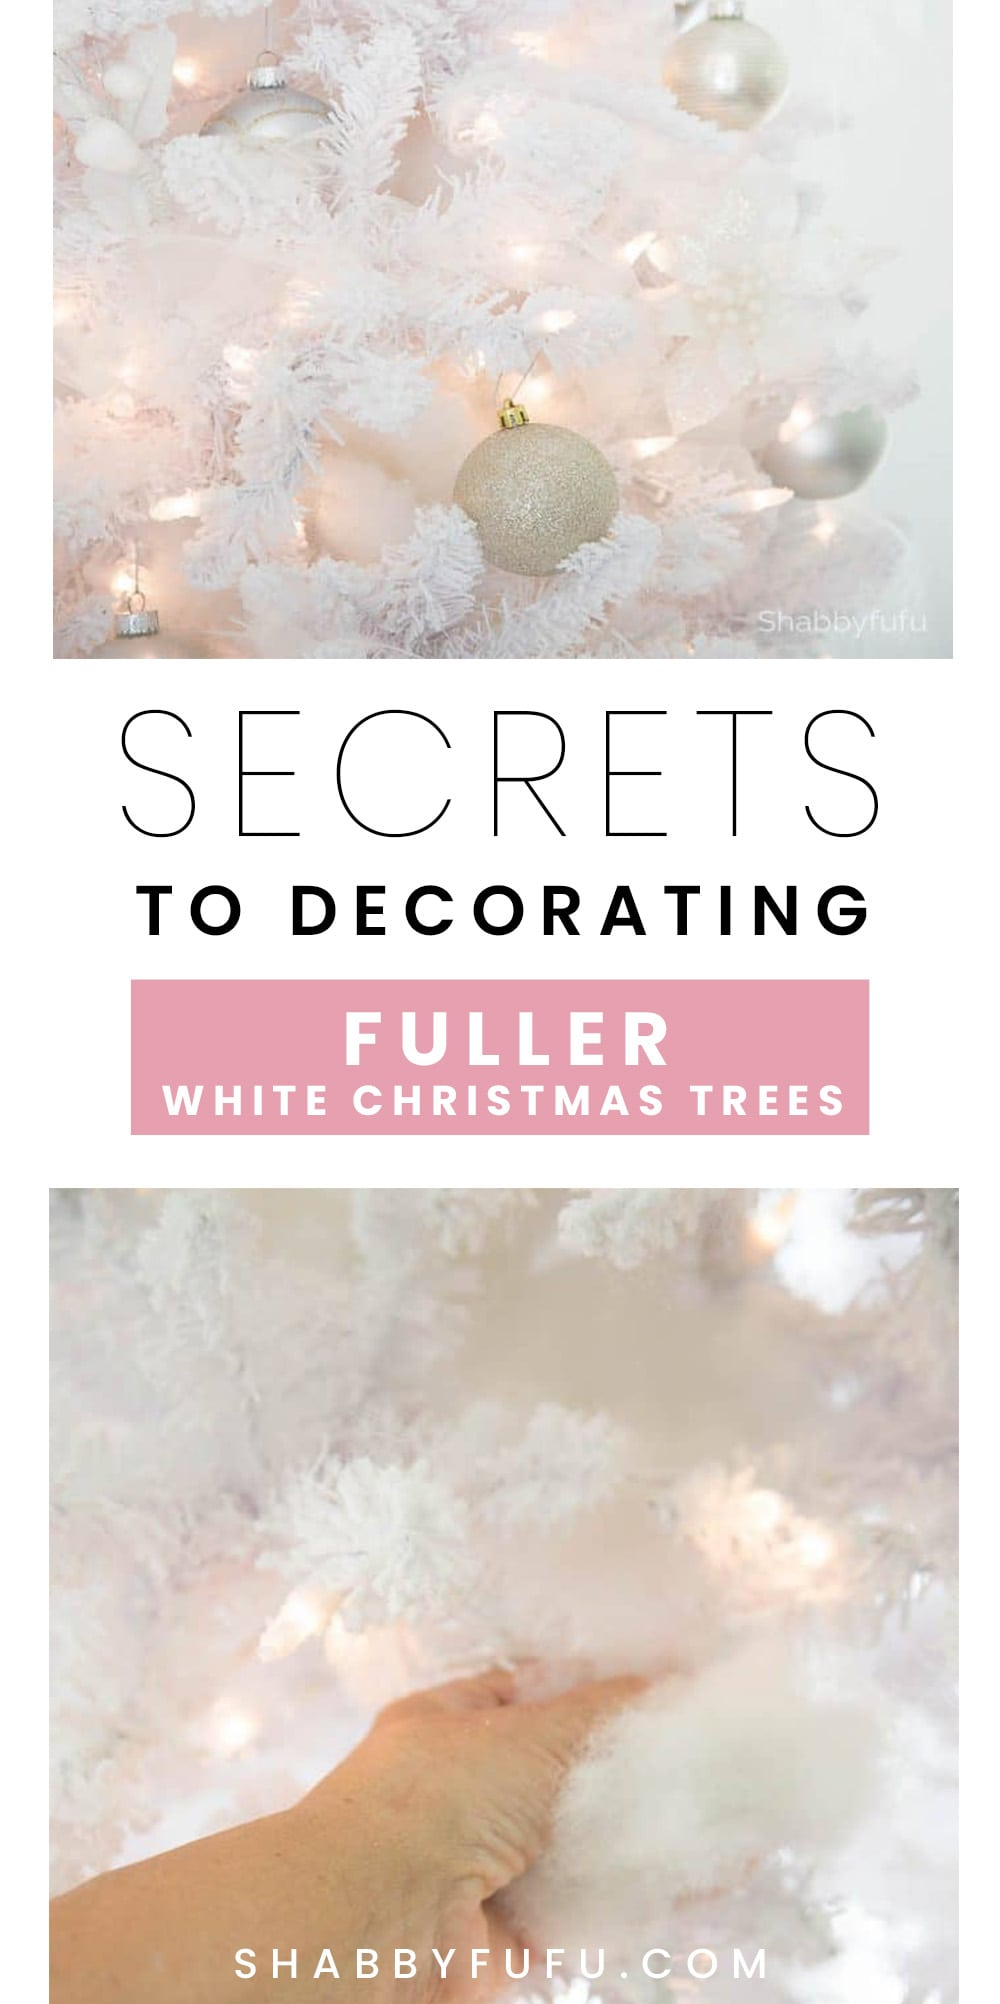 Secrets & Tips To Decorate A White Christmas Tree